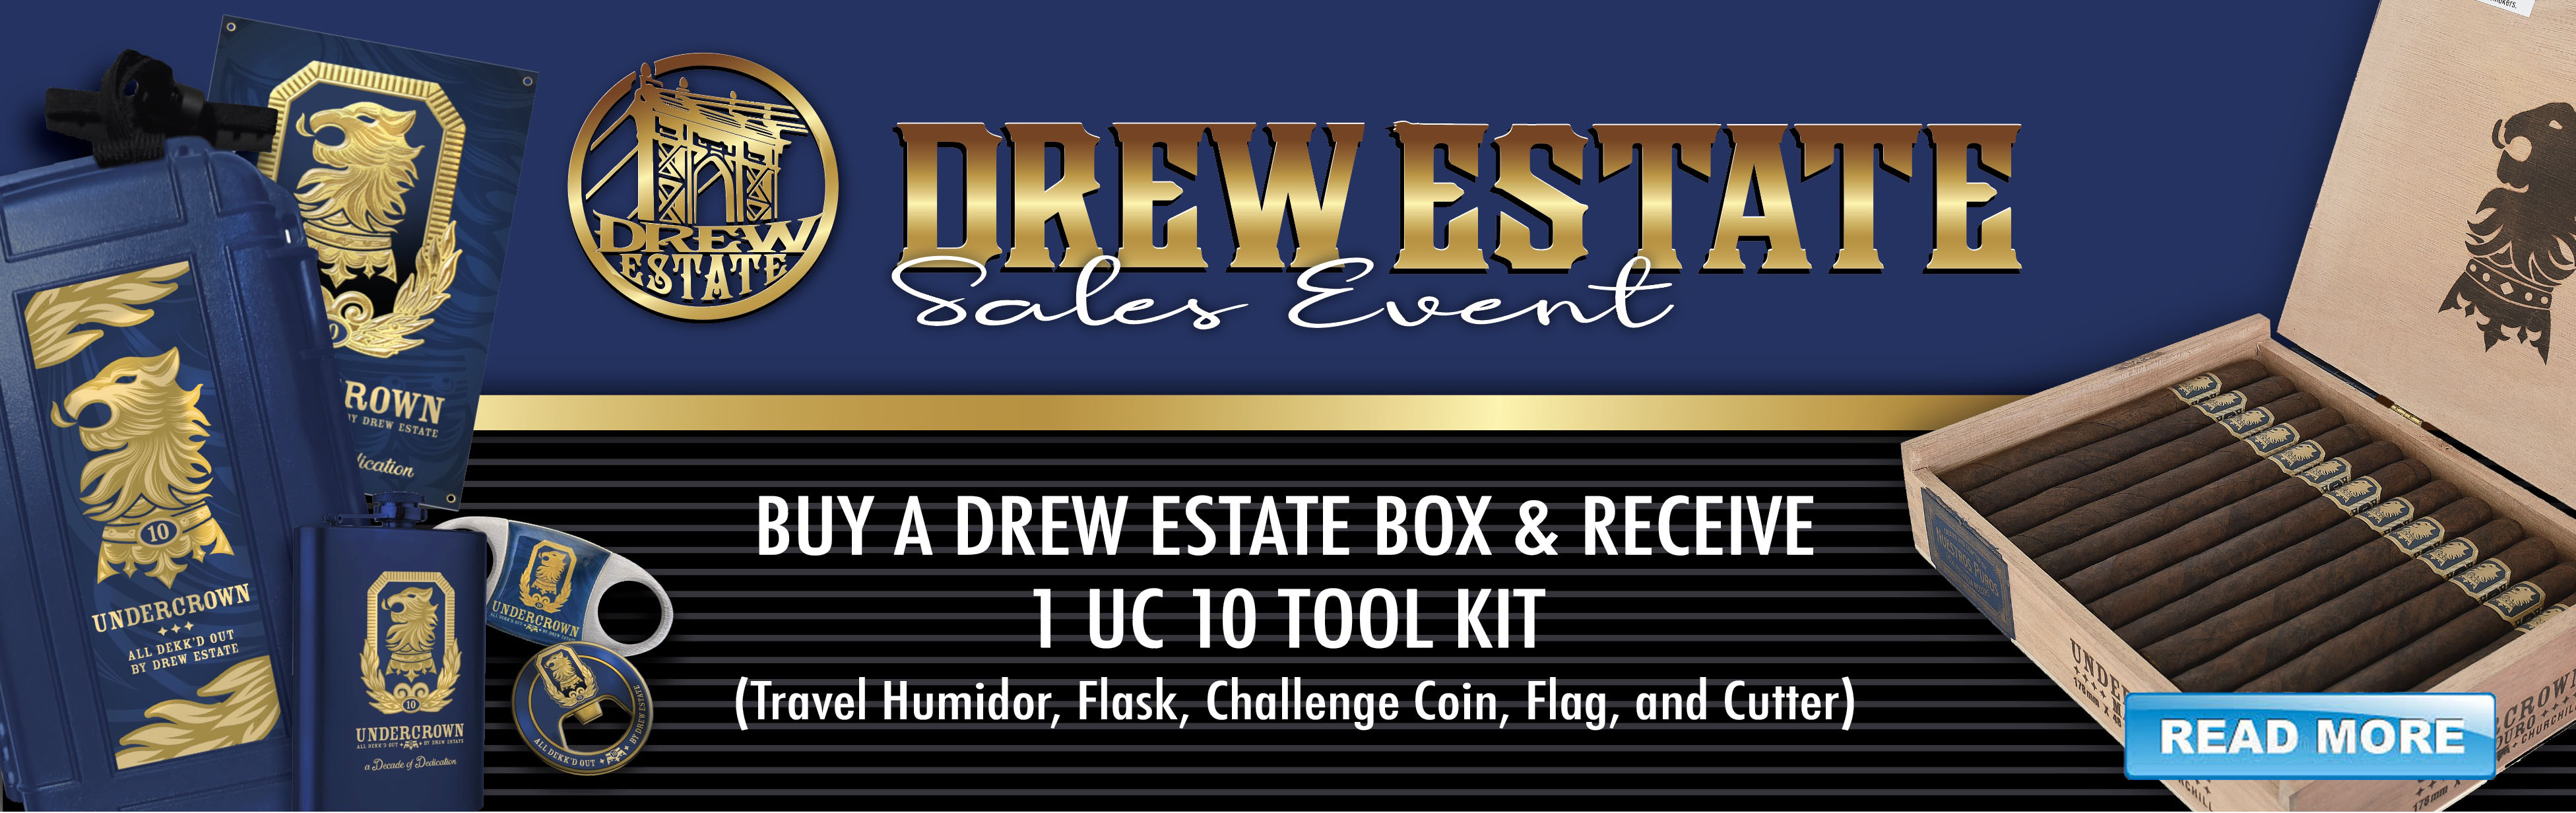 Drew Estate Cigars | Great Deals Giveaways and More